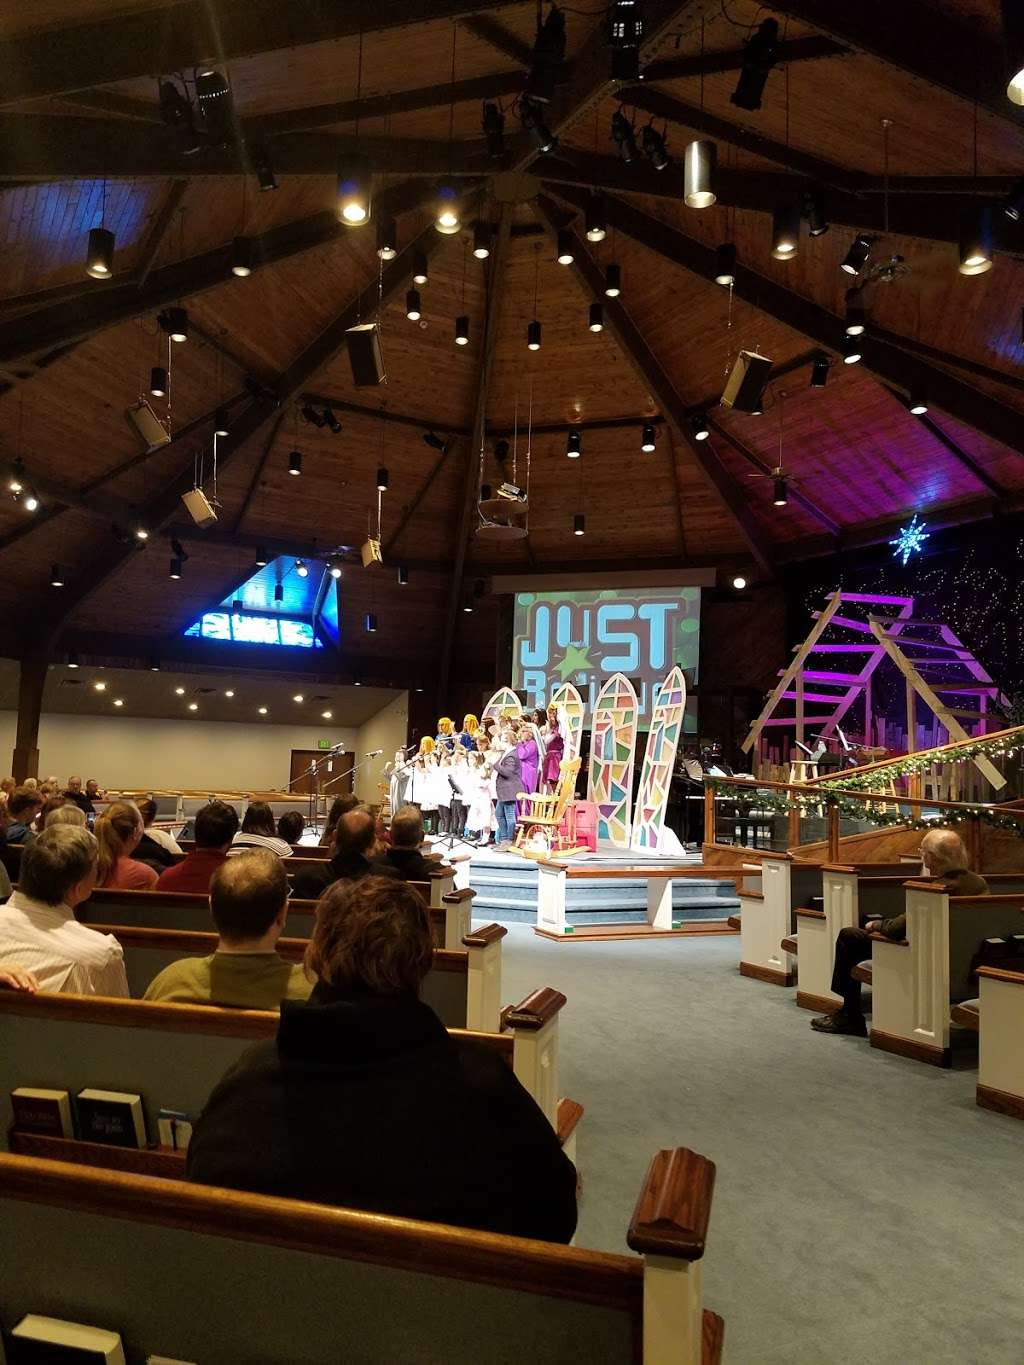 Southlake Church Of The Nazarene - church  | Photo 6 of 7 | Address: 7355 Lincoln Hwy, Crown Point, IN 46307, USA | Phone: (219) 947-2836